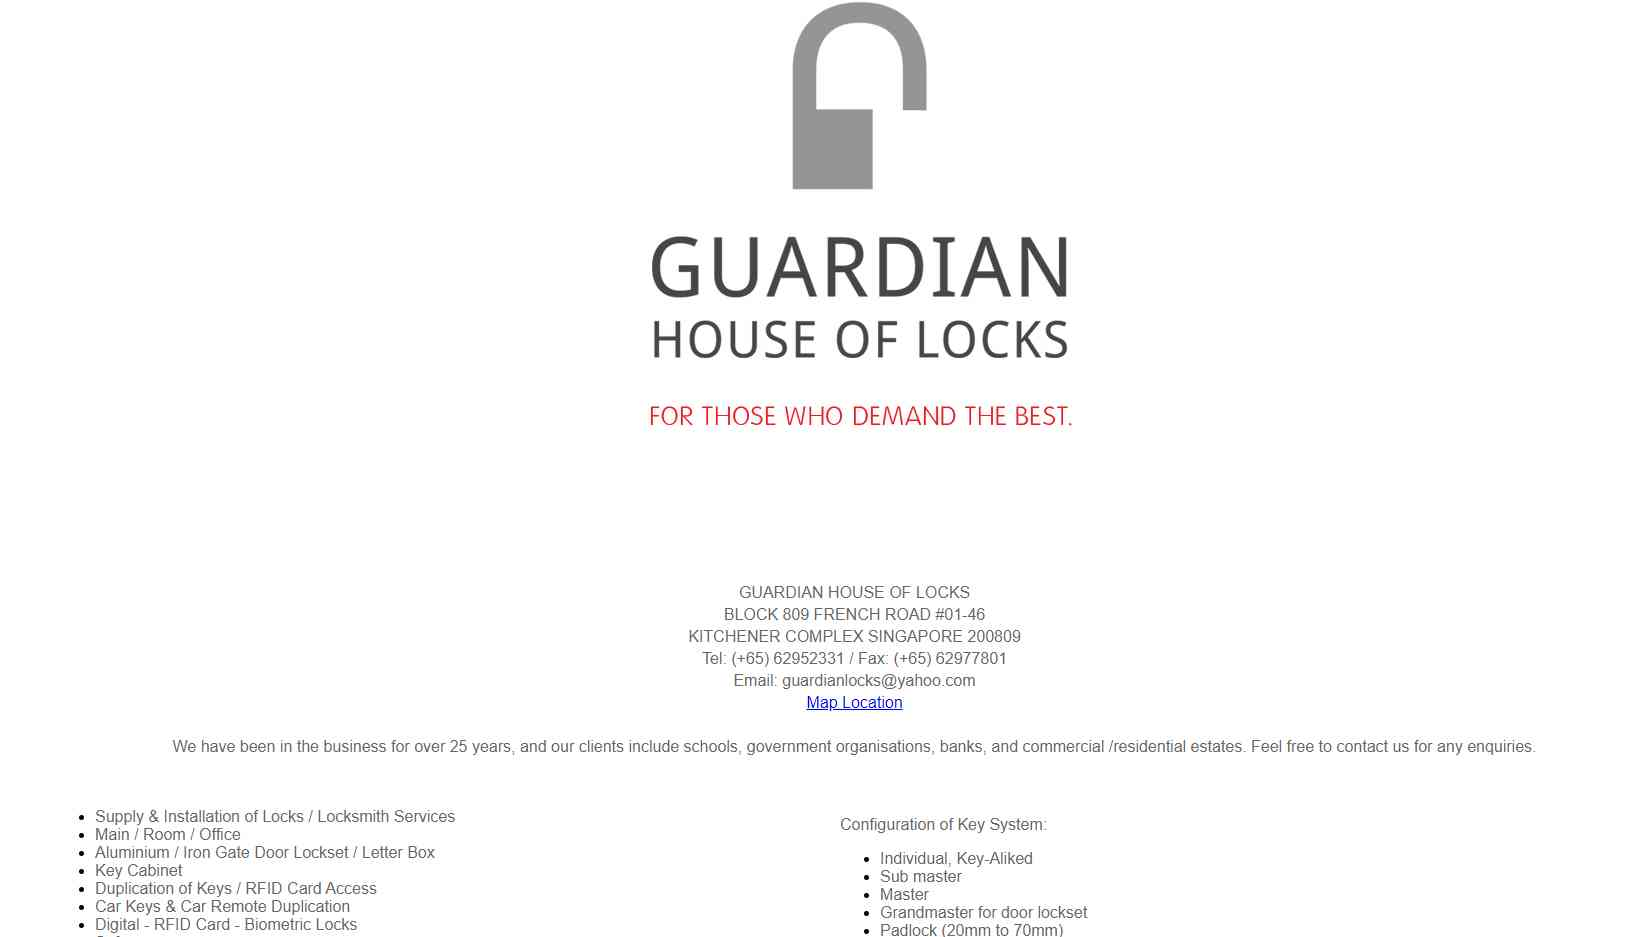 guardian house of locks Top Home Security Systems in Singapore